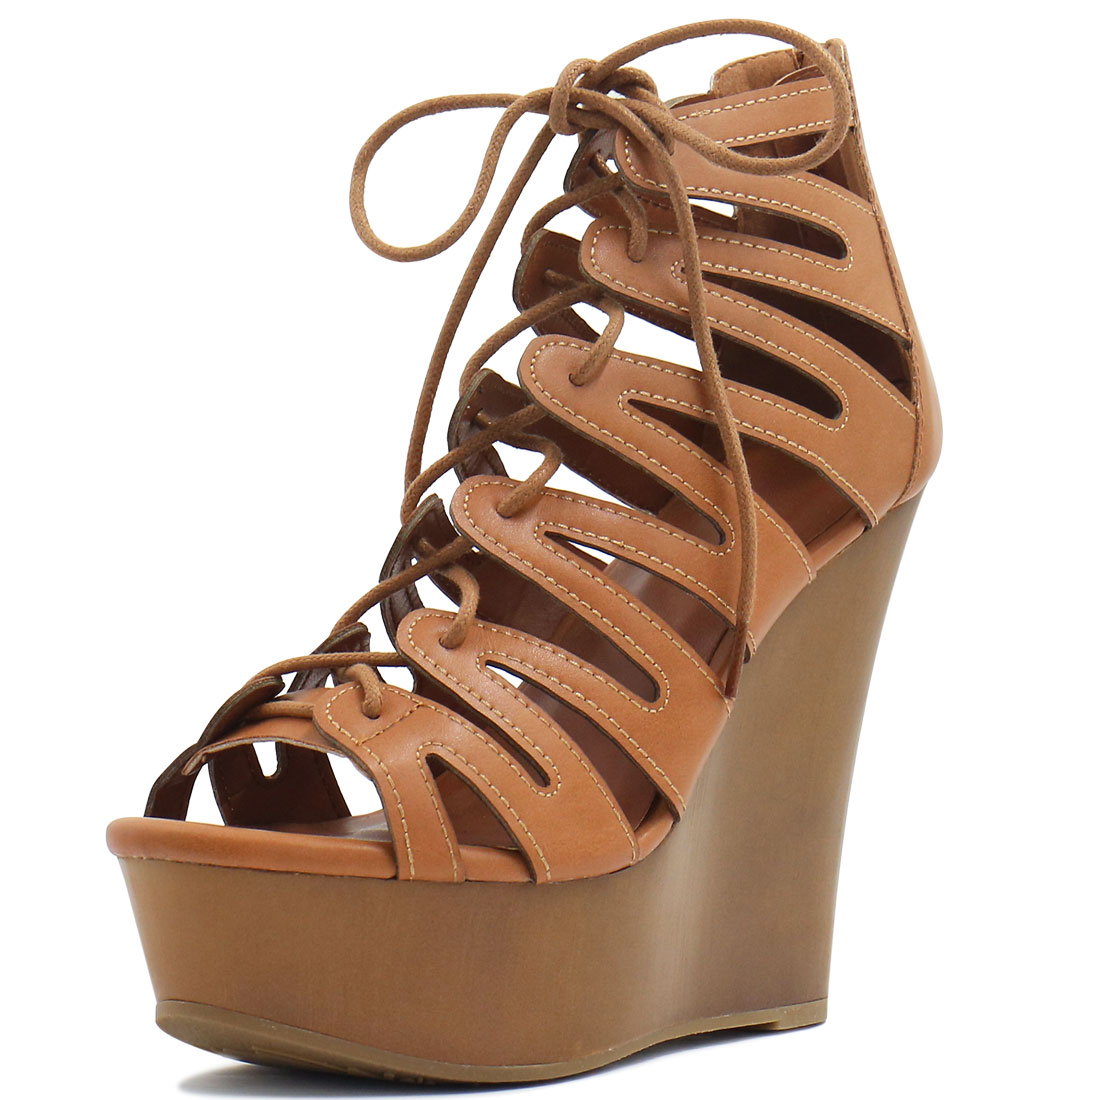 Woman Open Toe Lace-Up Cutout Platform Wedge Sandals Brown US 8